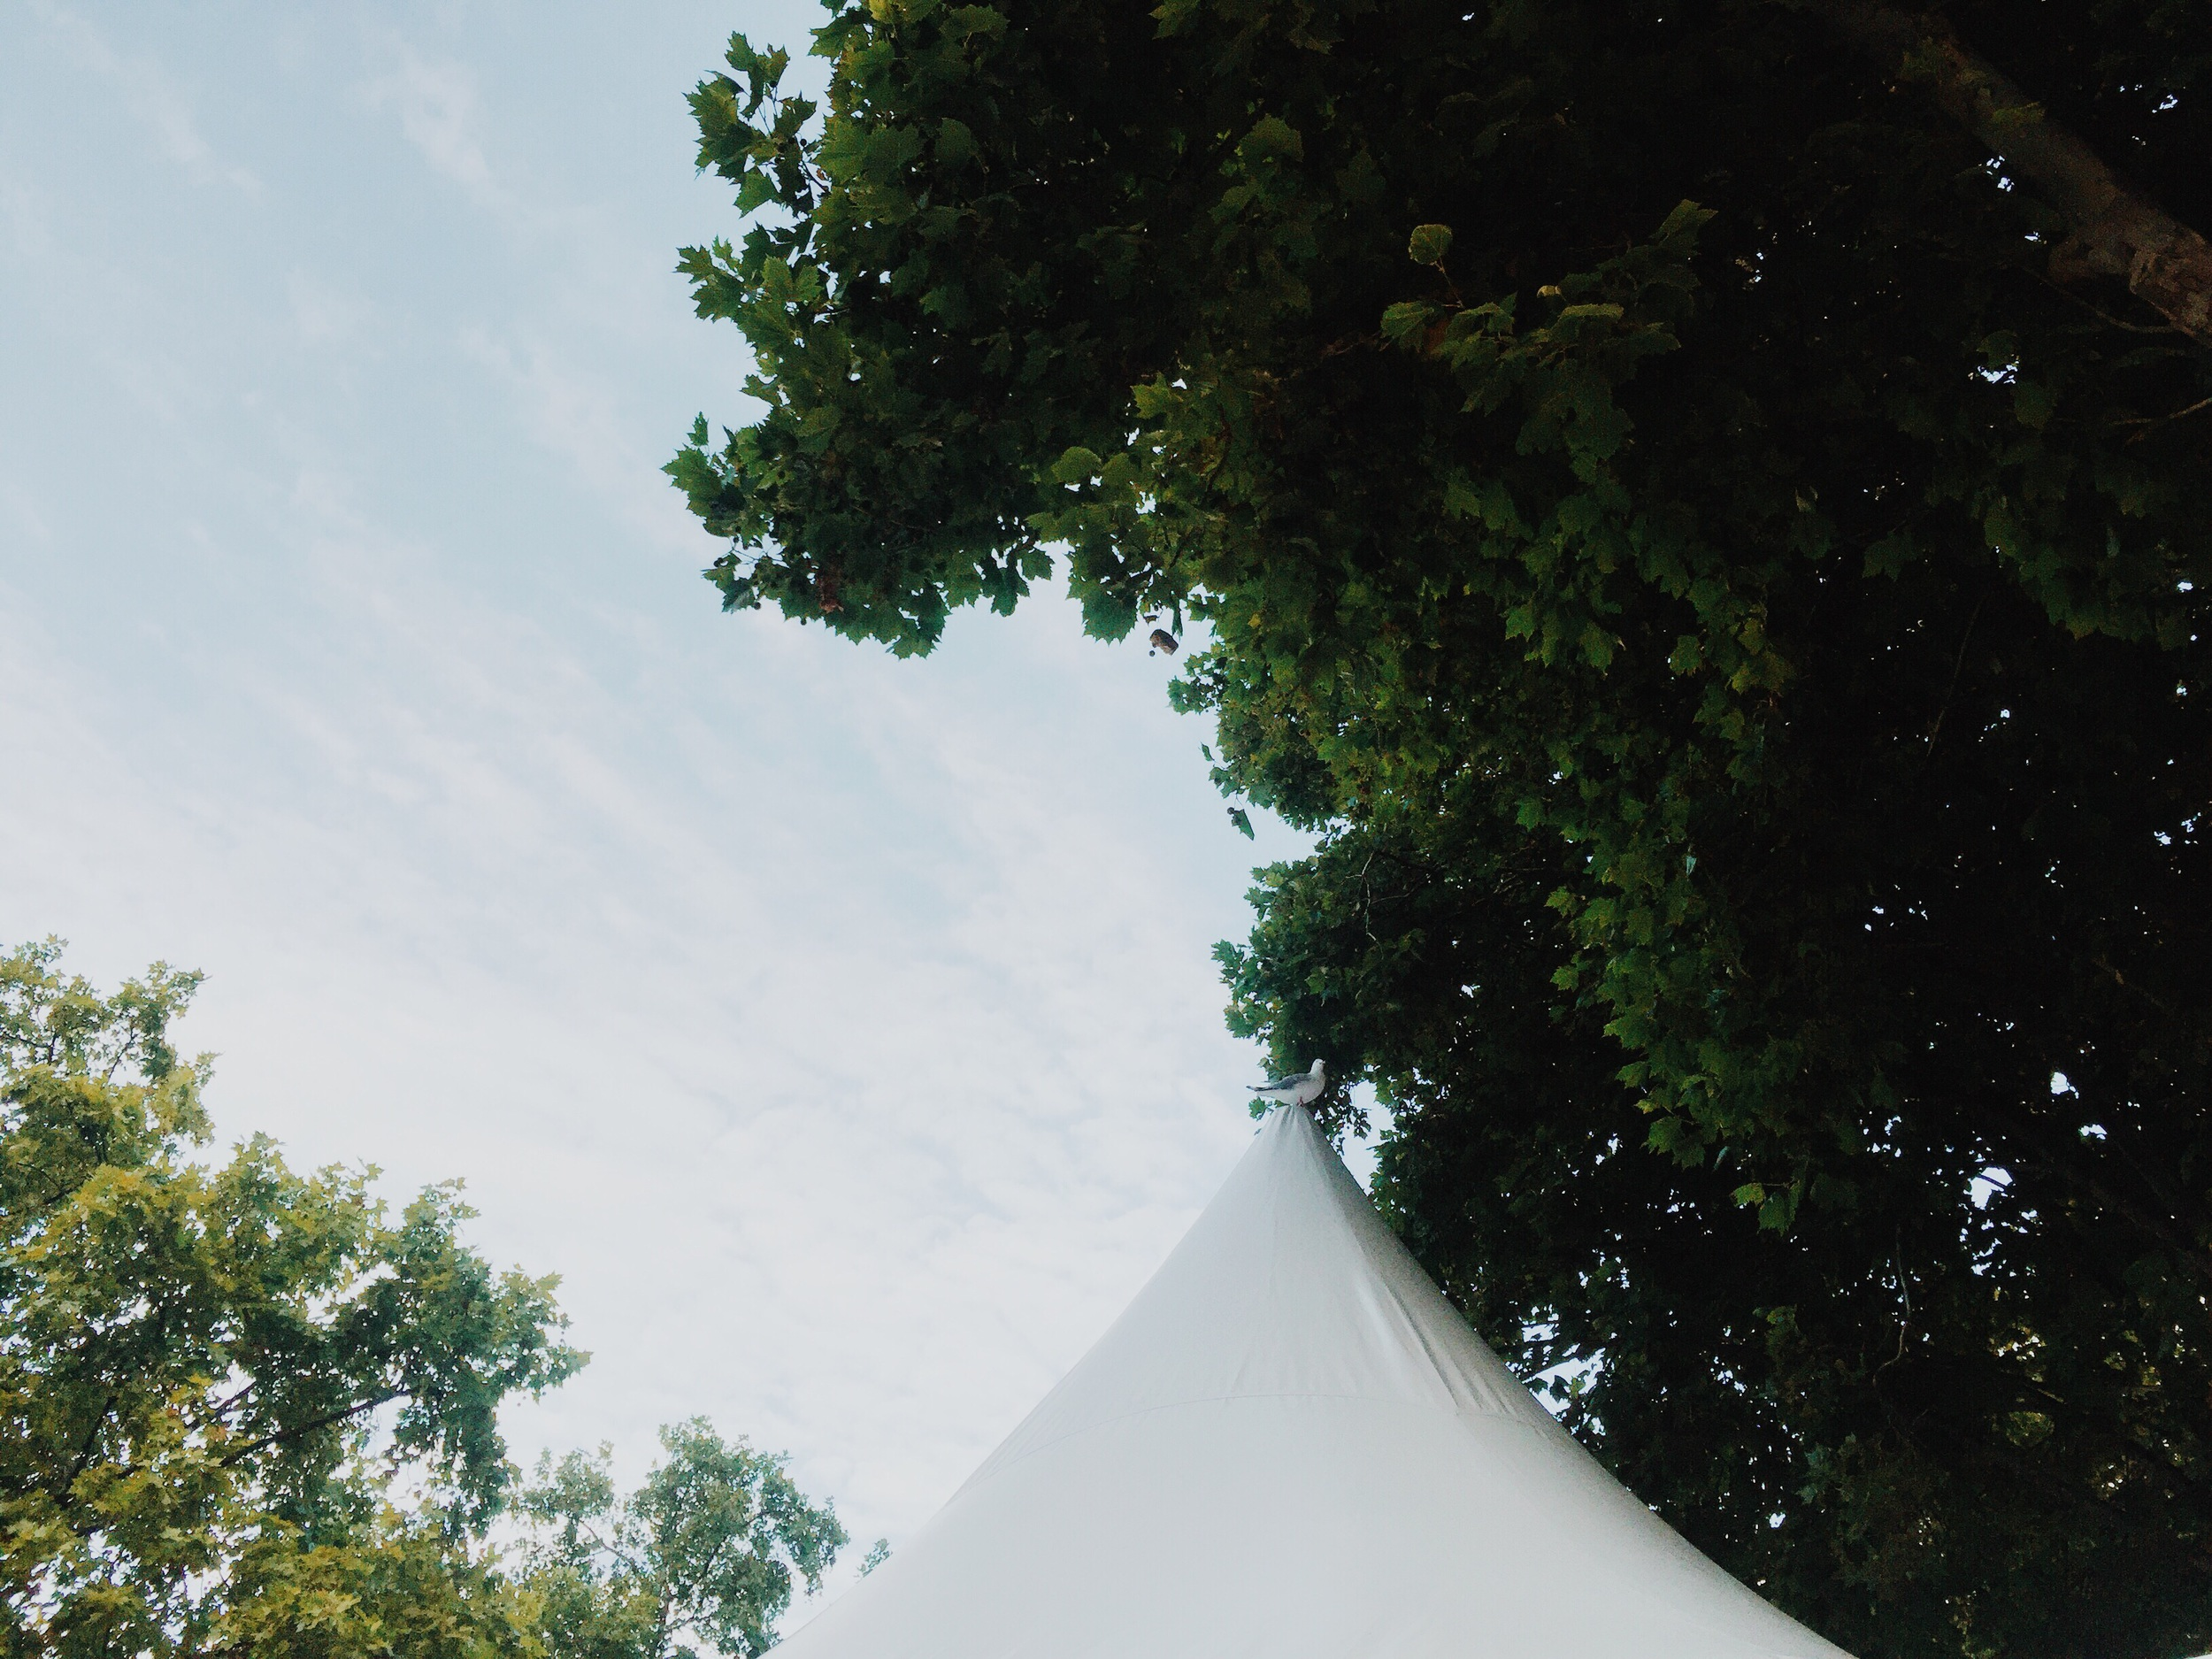 Seagull on a tent